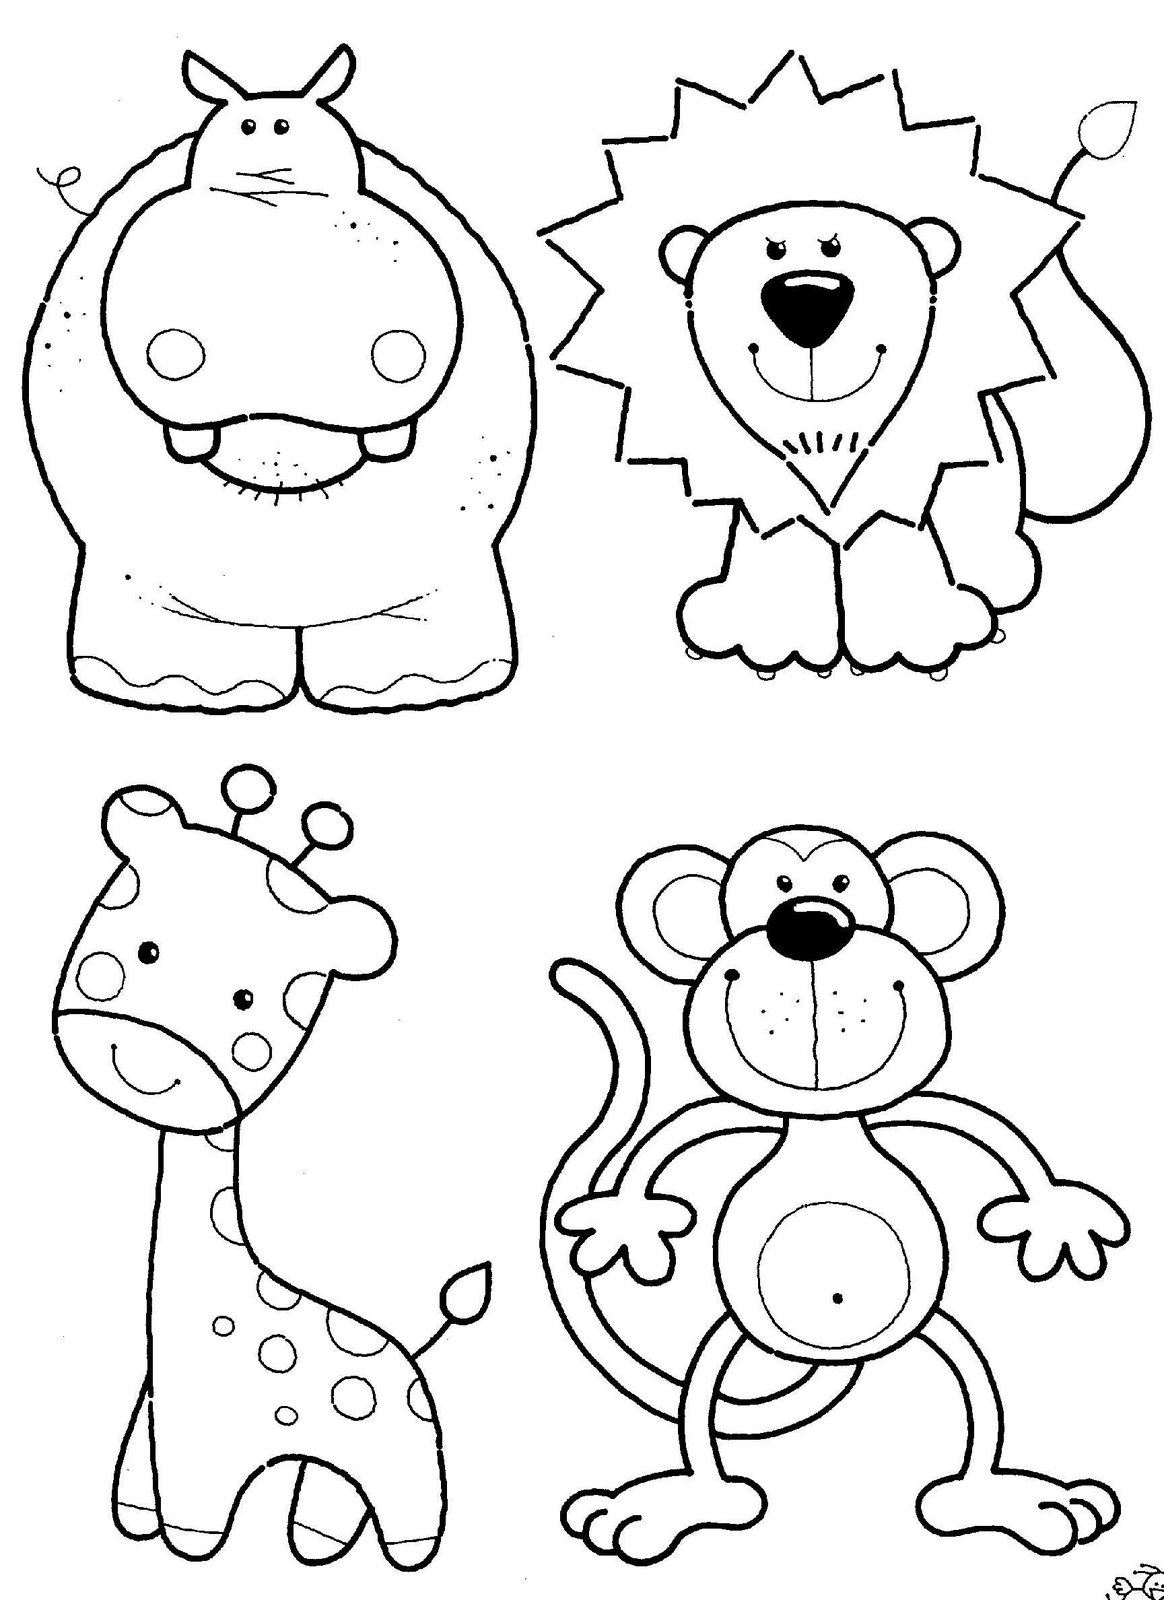 printable zoo animal coloring pages coloring ville zoo pages printable coloring animal